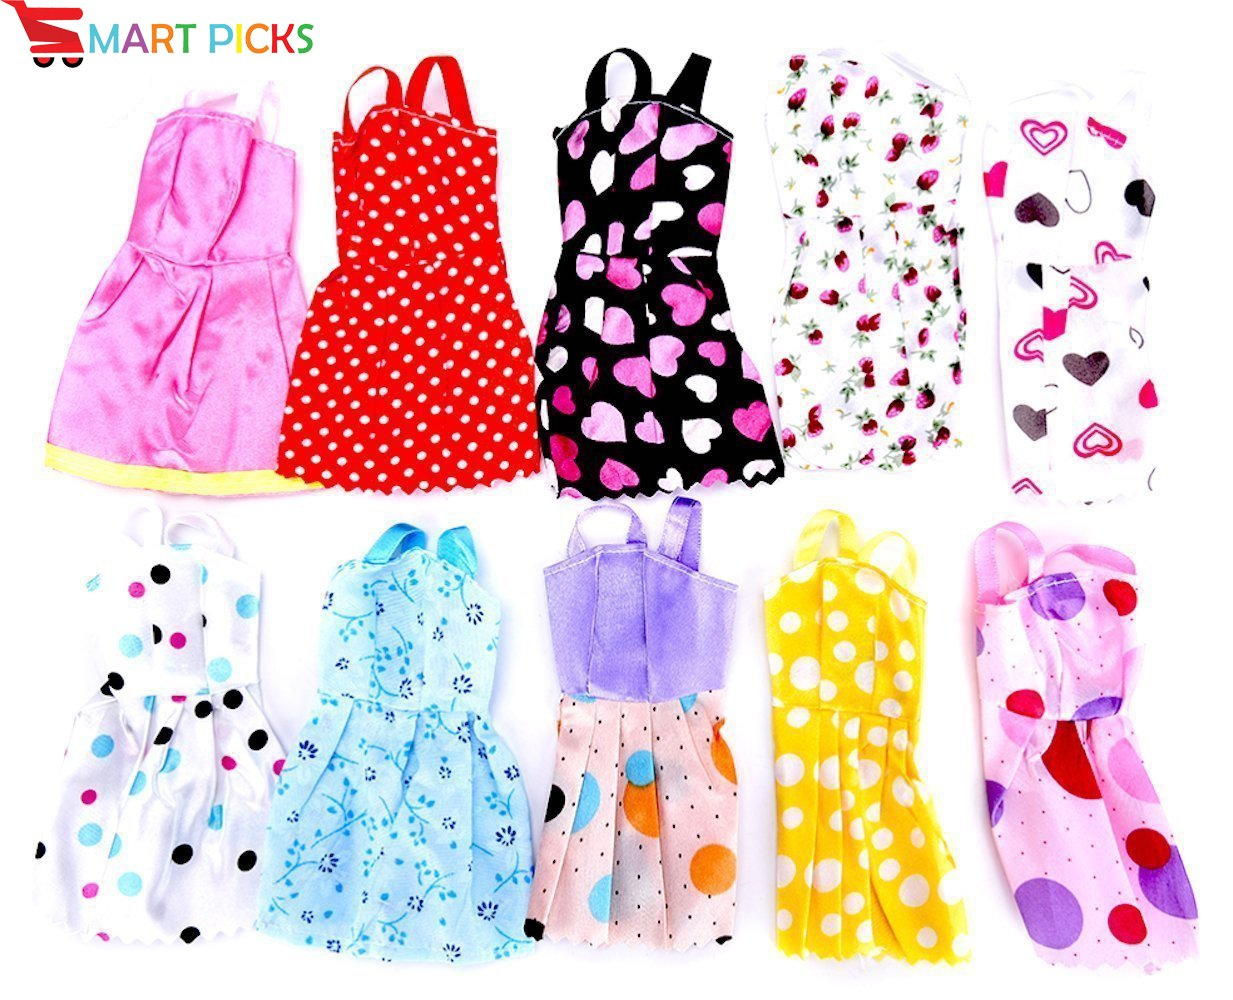 Handmade Party Dress Fashion Clothes for Doll – 10 pieces